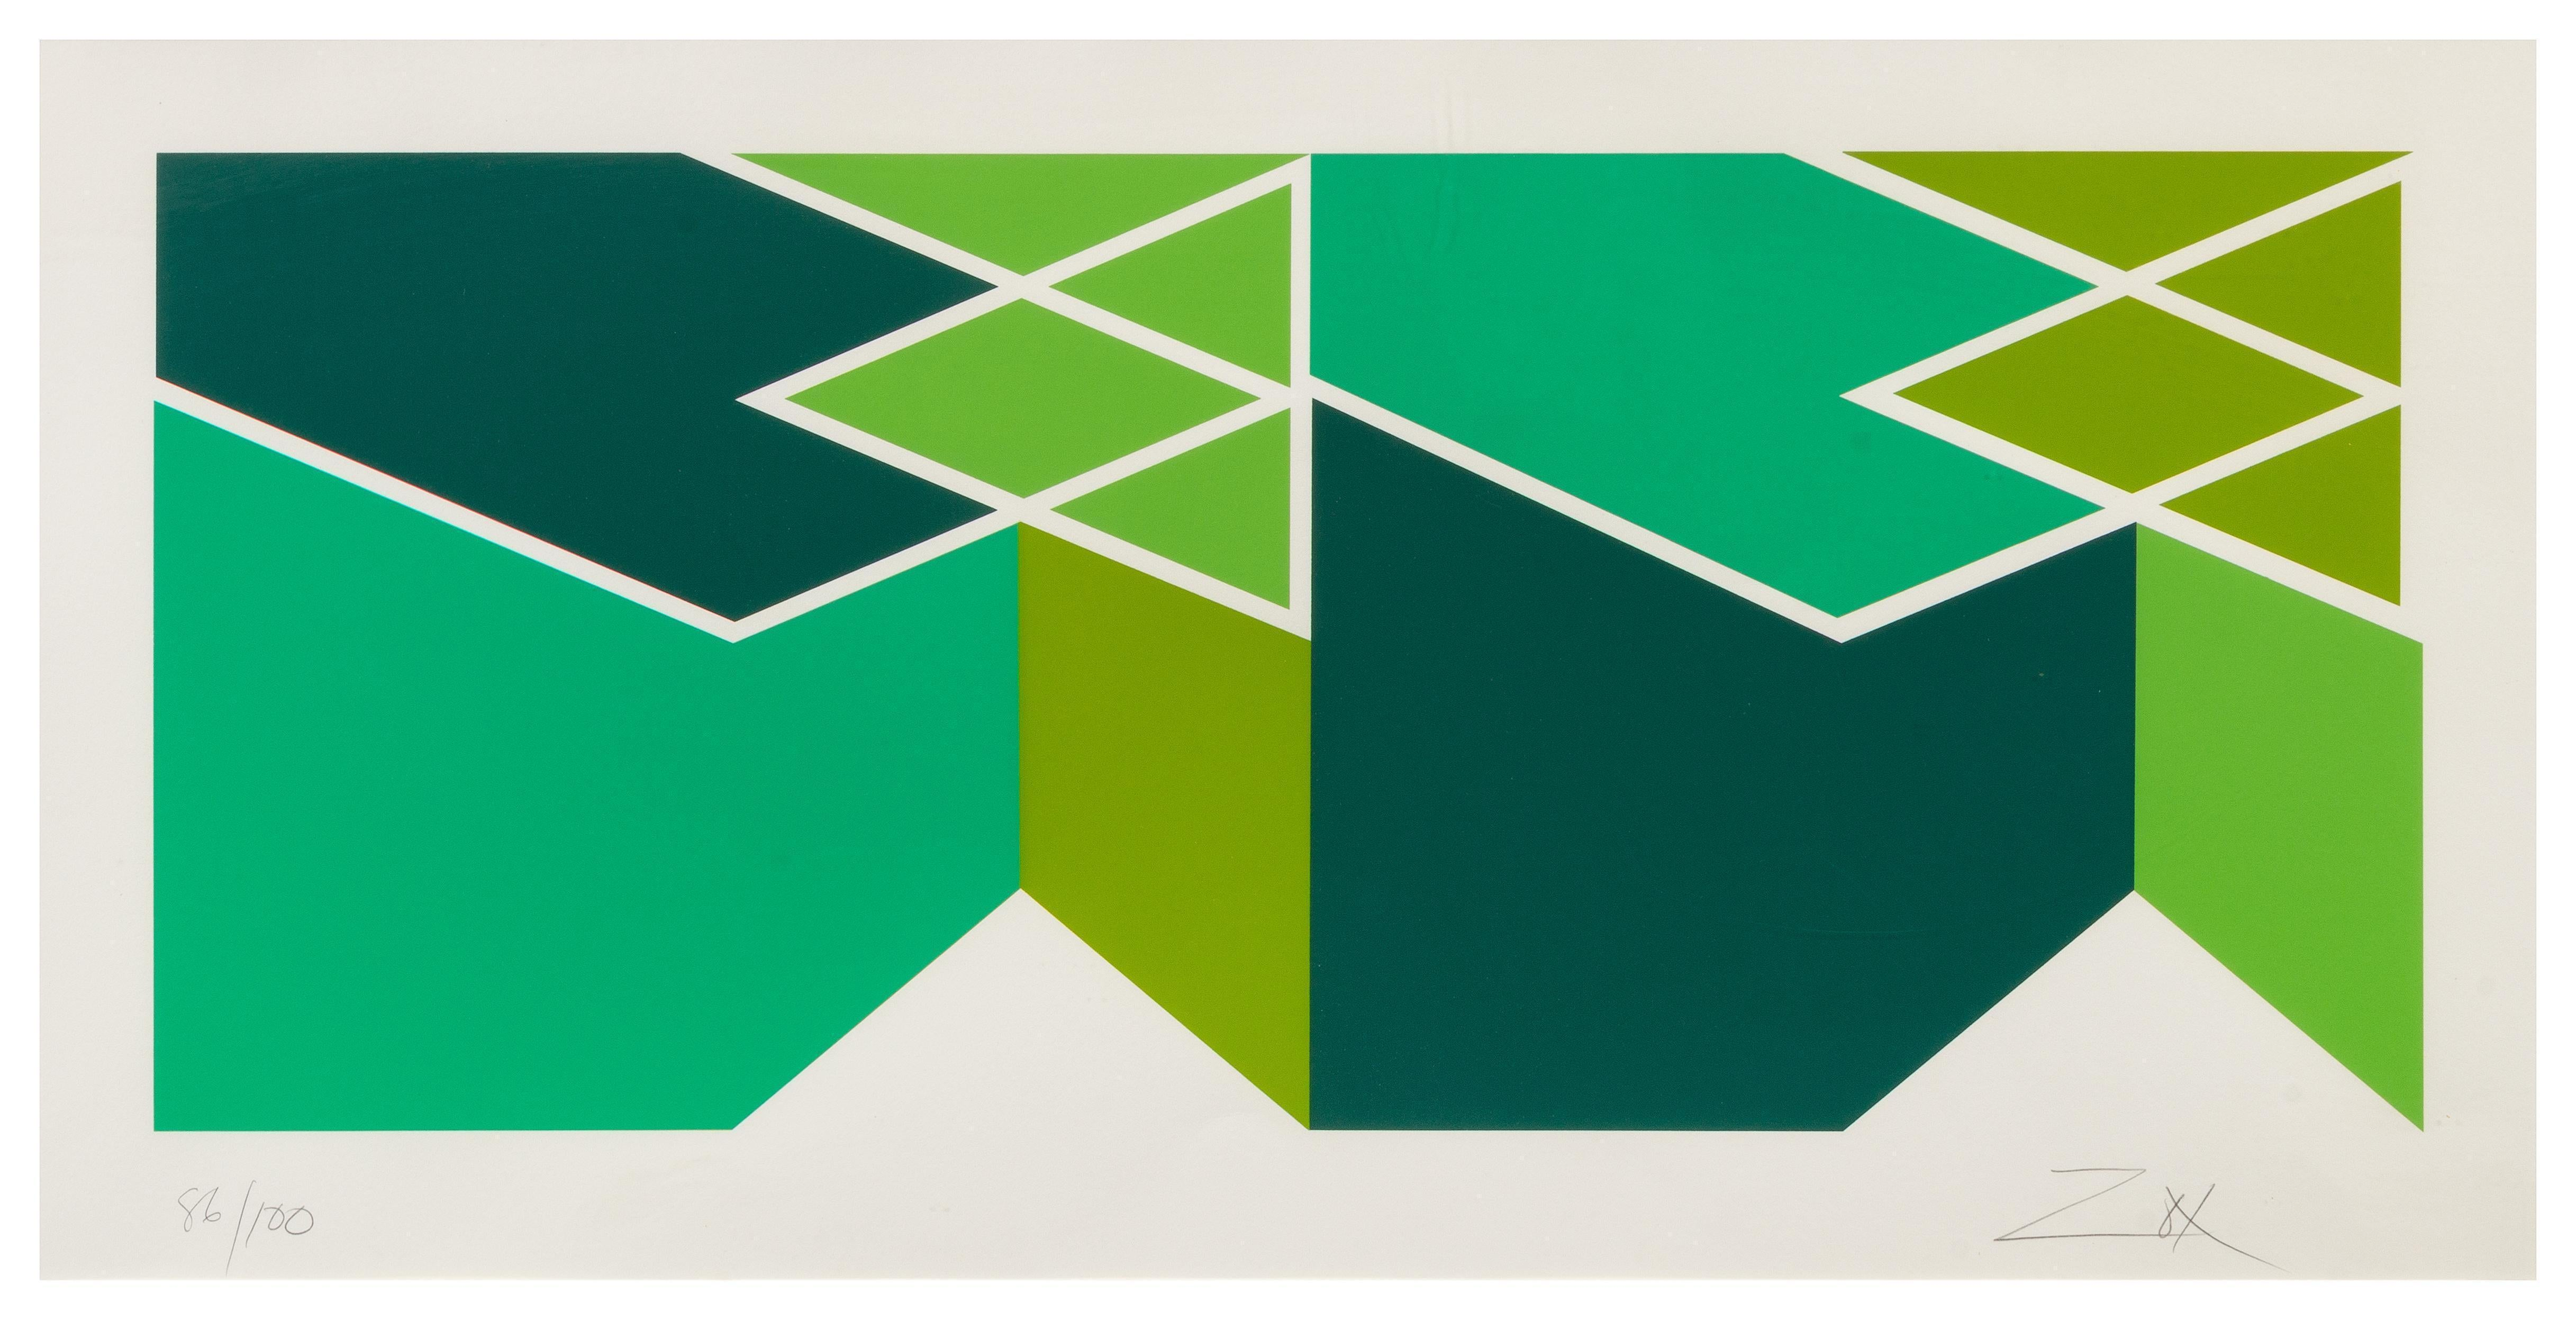 Larry Zox 'Double Green' Signed Limited Edition Geometric Abstract Print